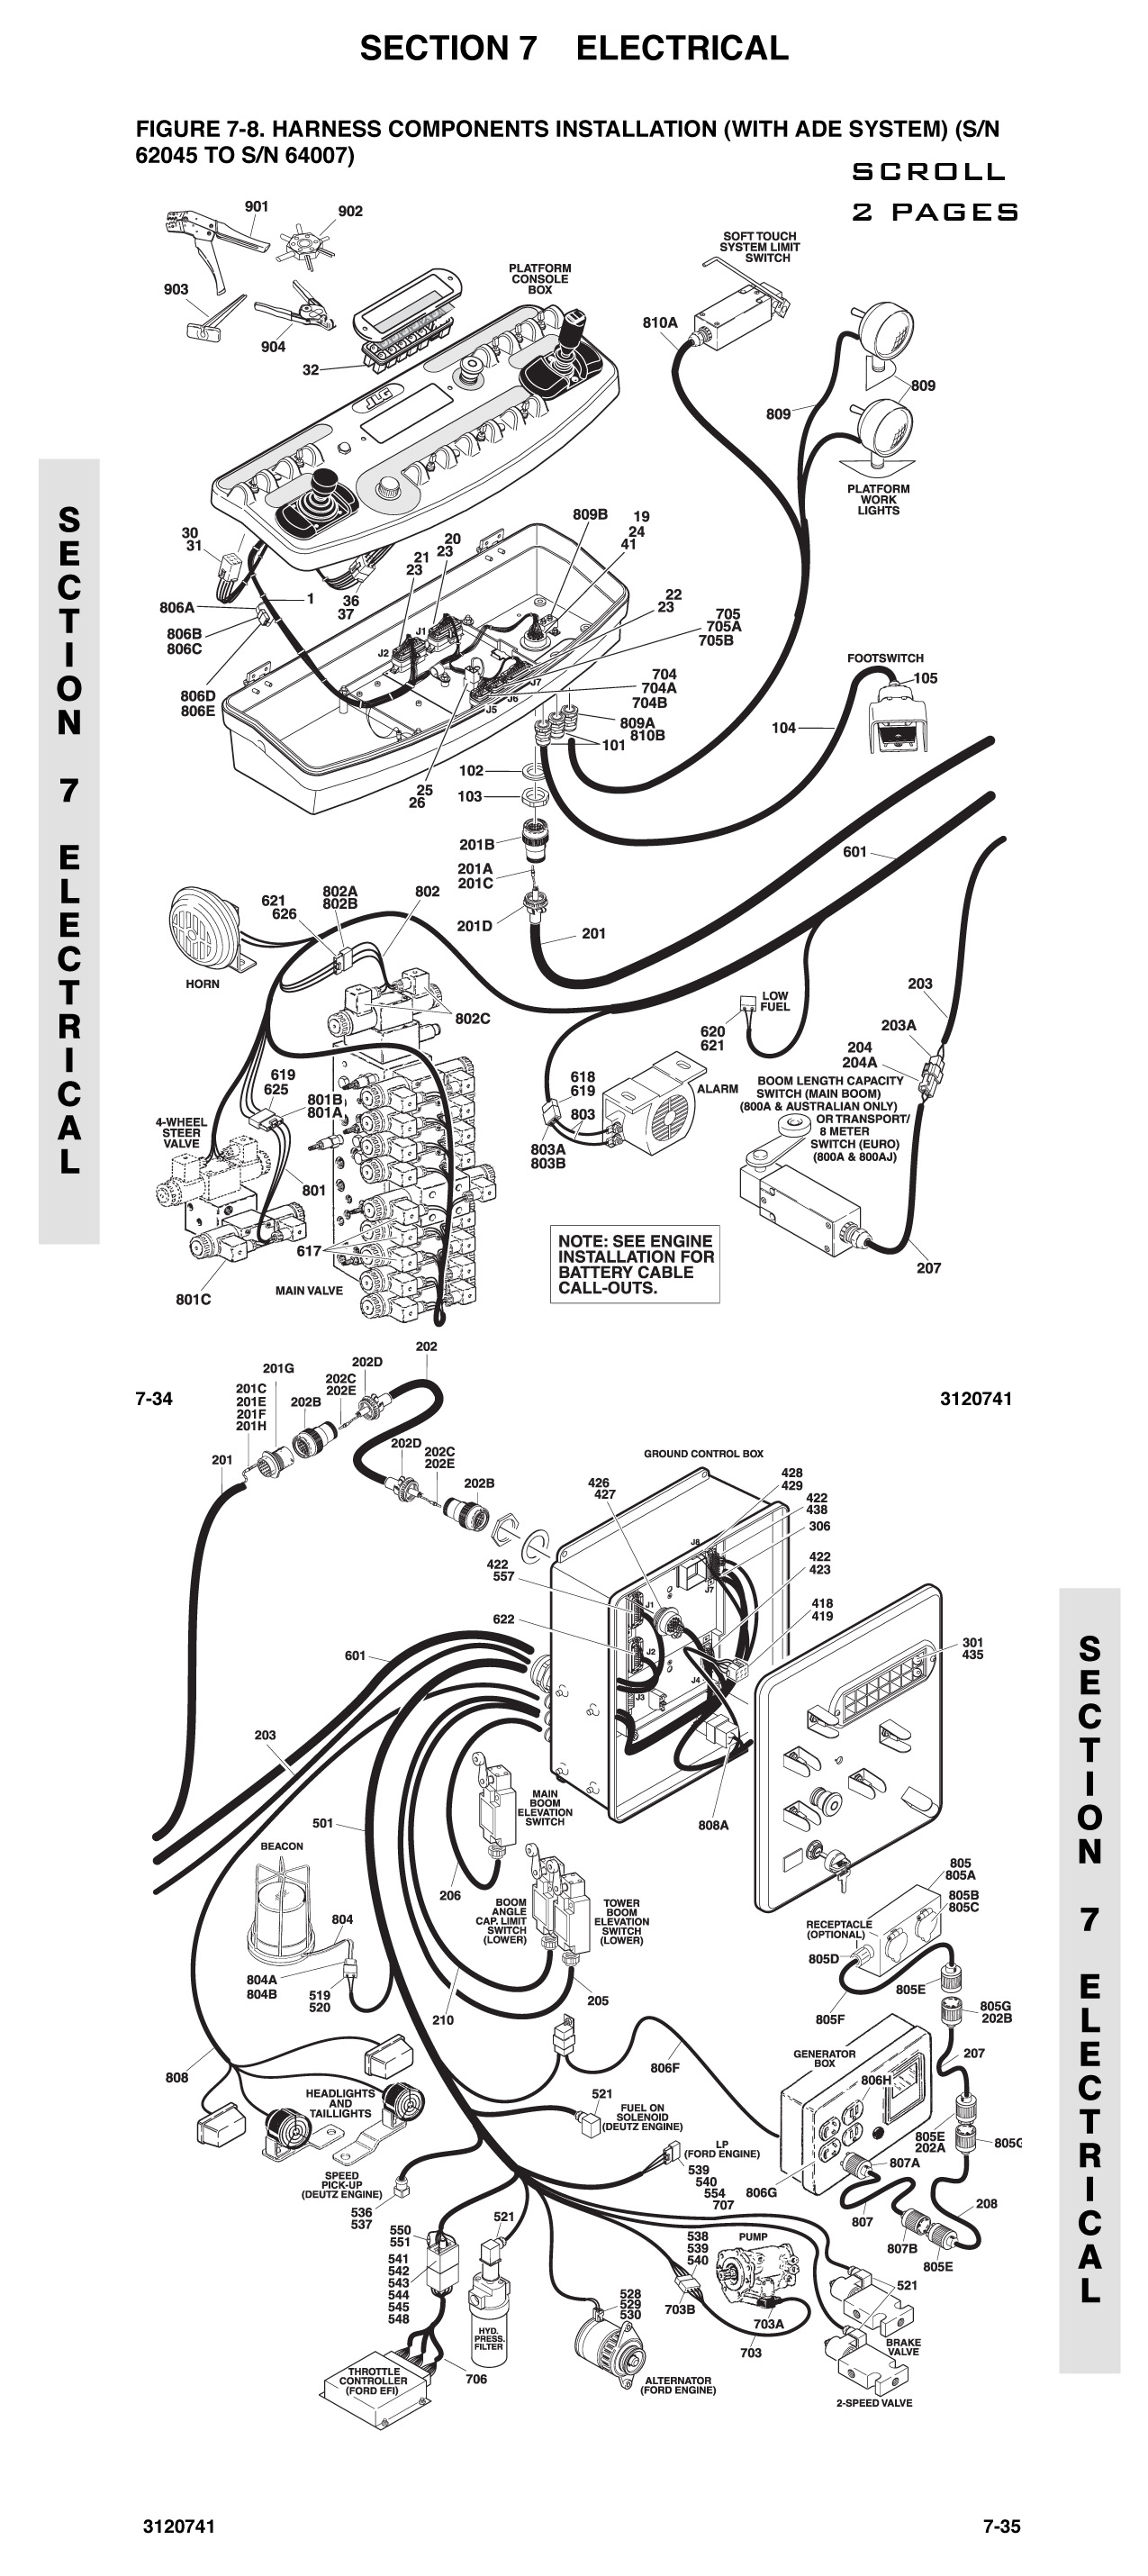 2006 Gmc C4500 Topkick Engine Wiring Diagram 2000 GMC